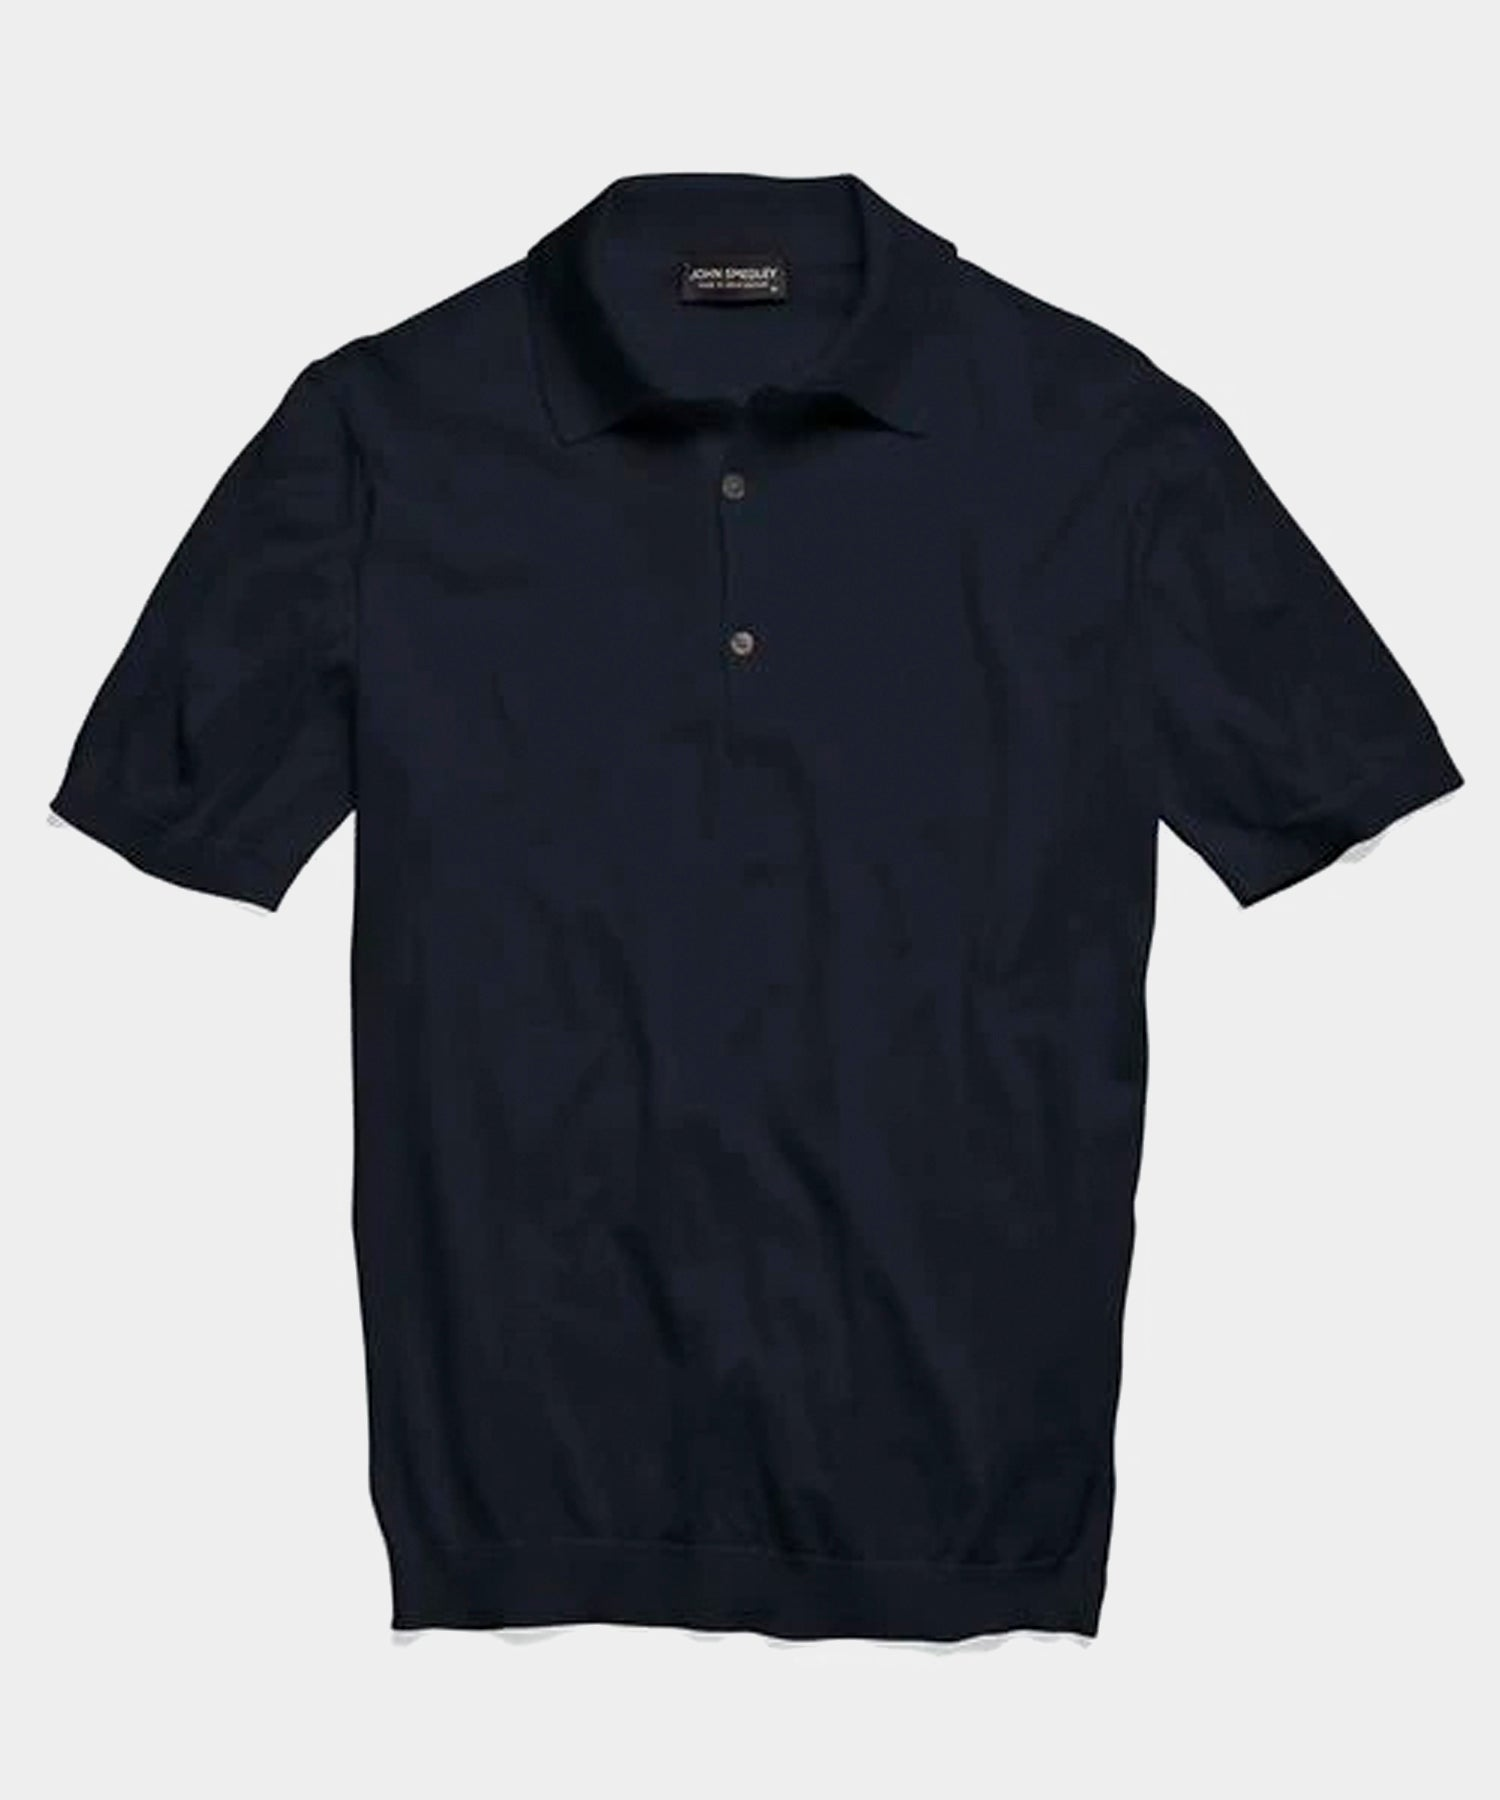 John Smedley Adrian Short Sleeve Polo Sweater in Navy